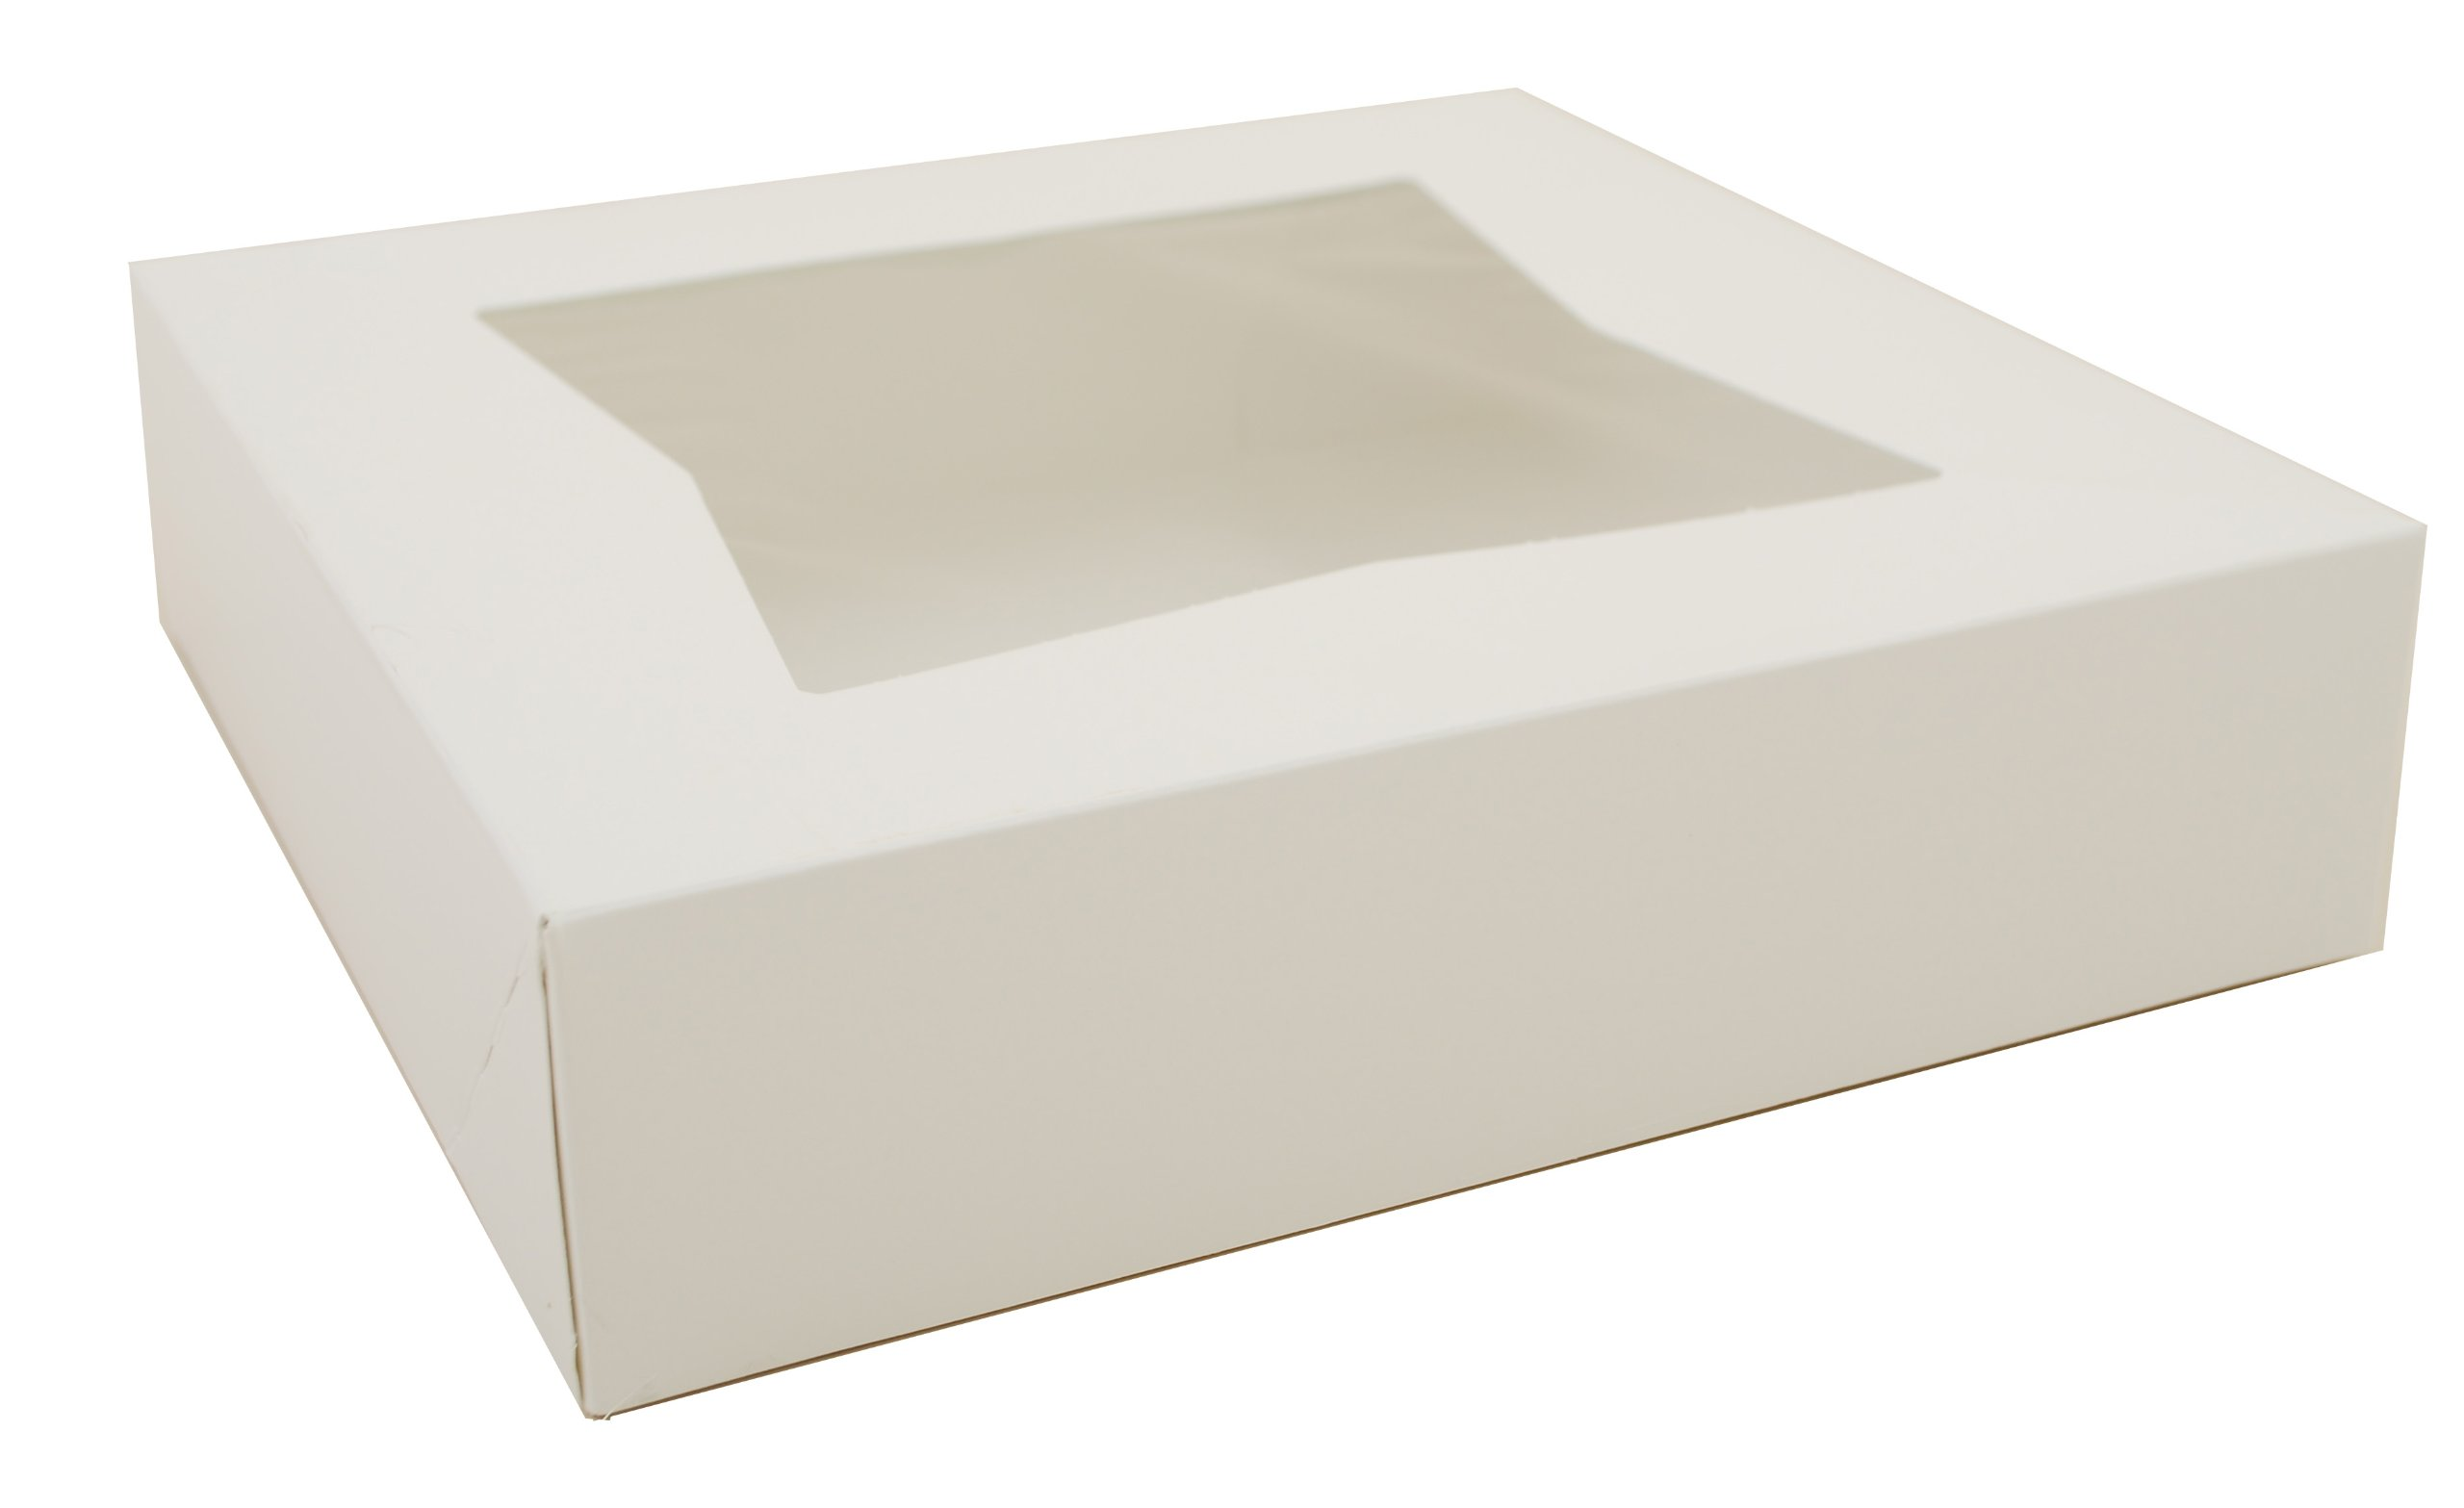 Southern Champion Tray 24233 Paperboard White Window Bakery Box, 10'' Length x 10'' Width x 2-1/2'' Height (Case of 200)